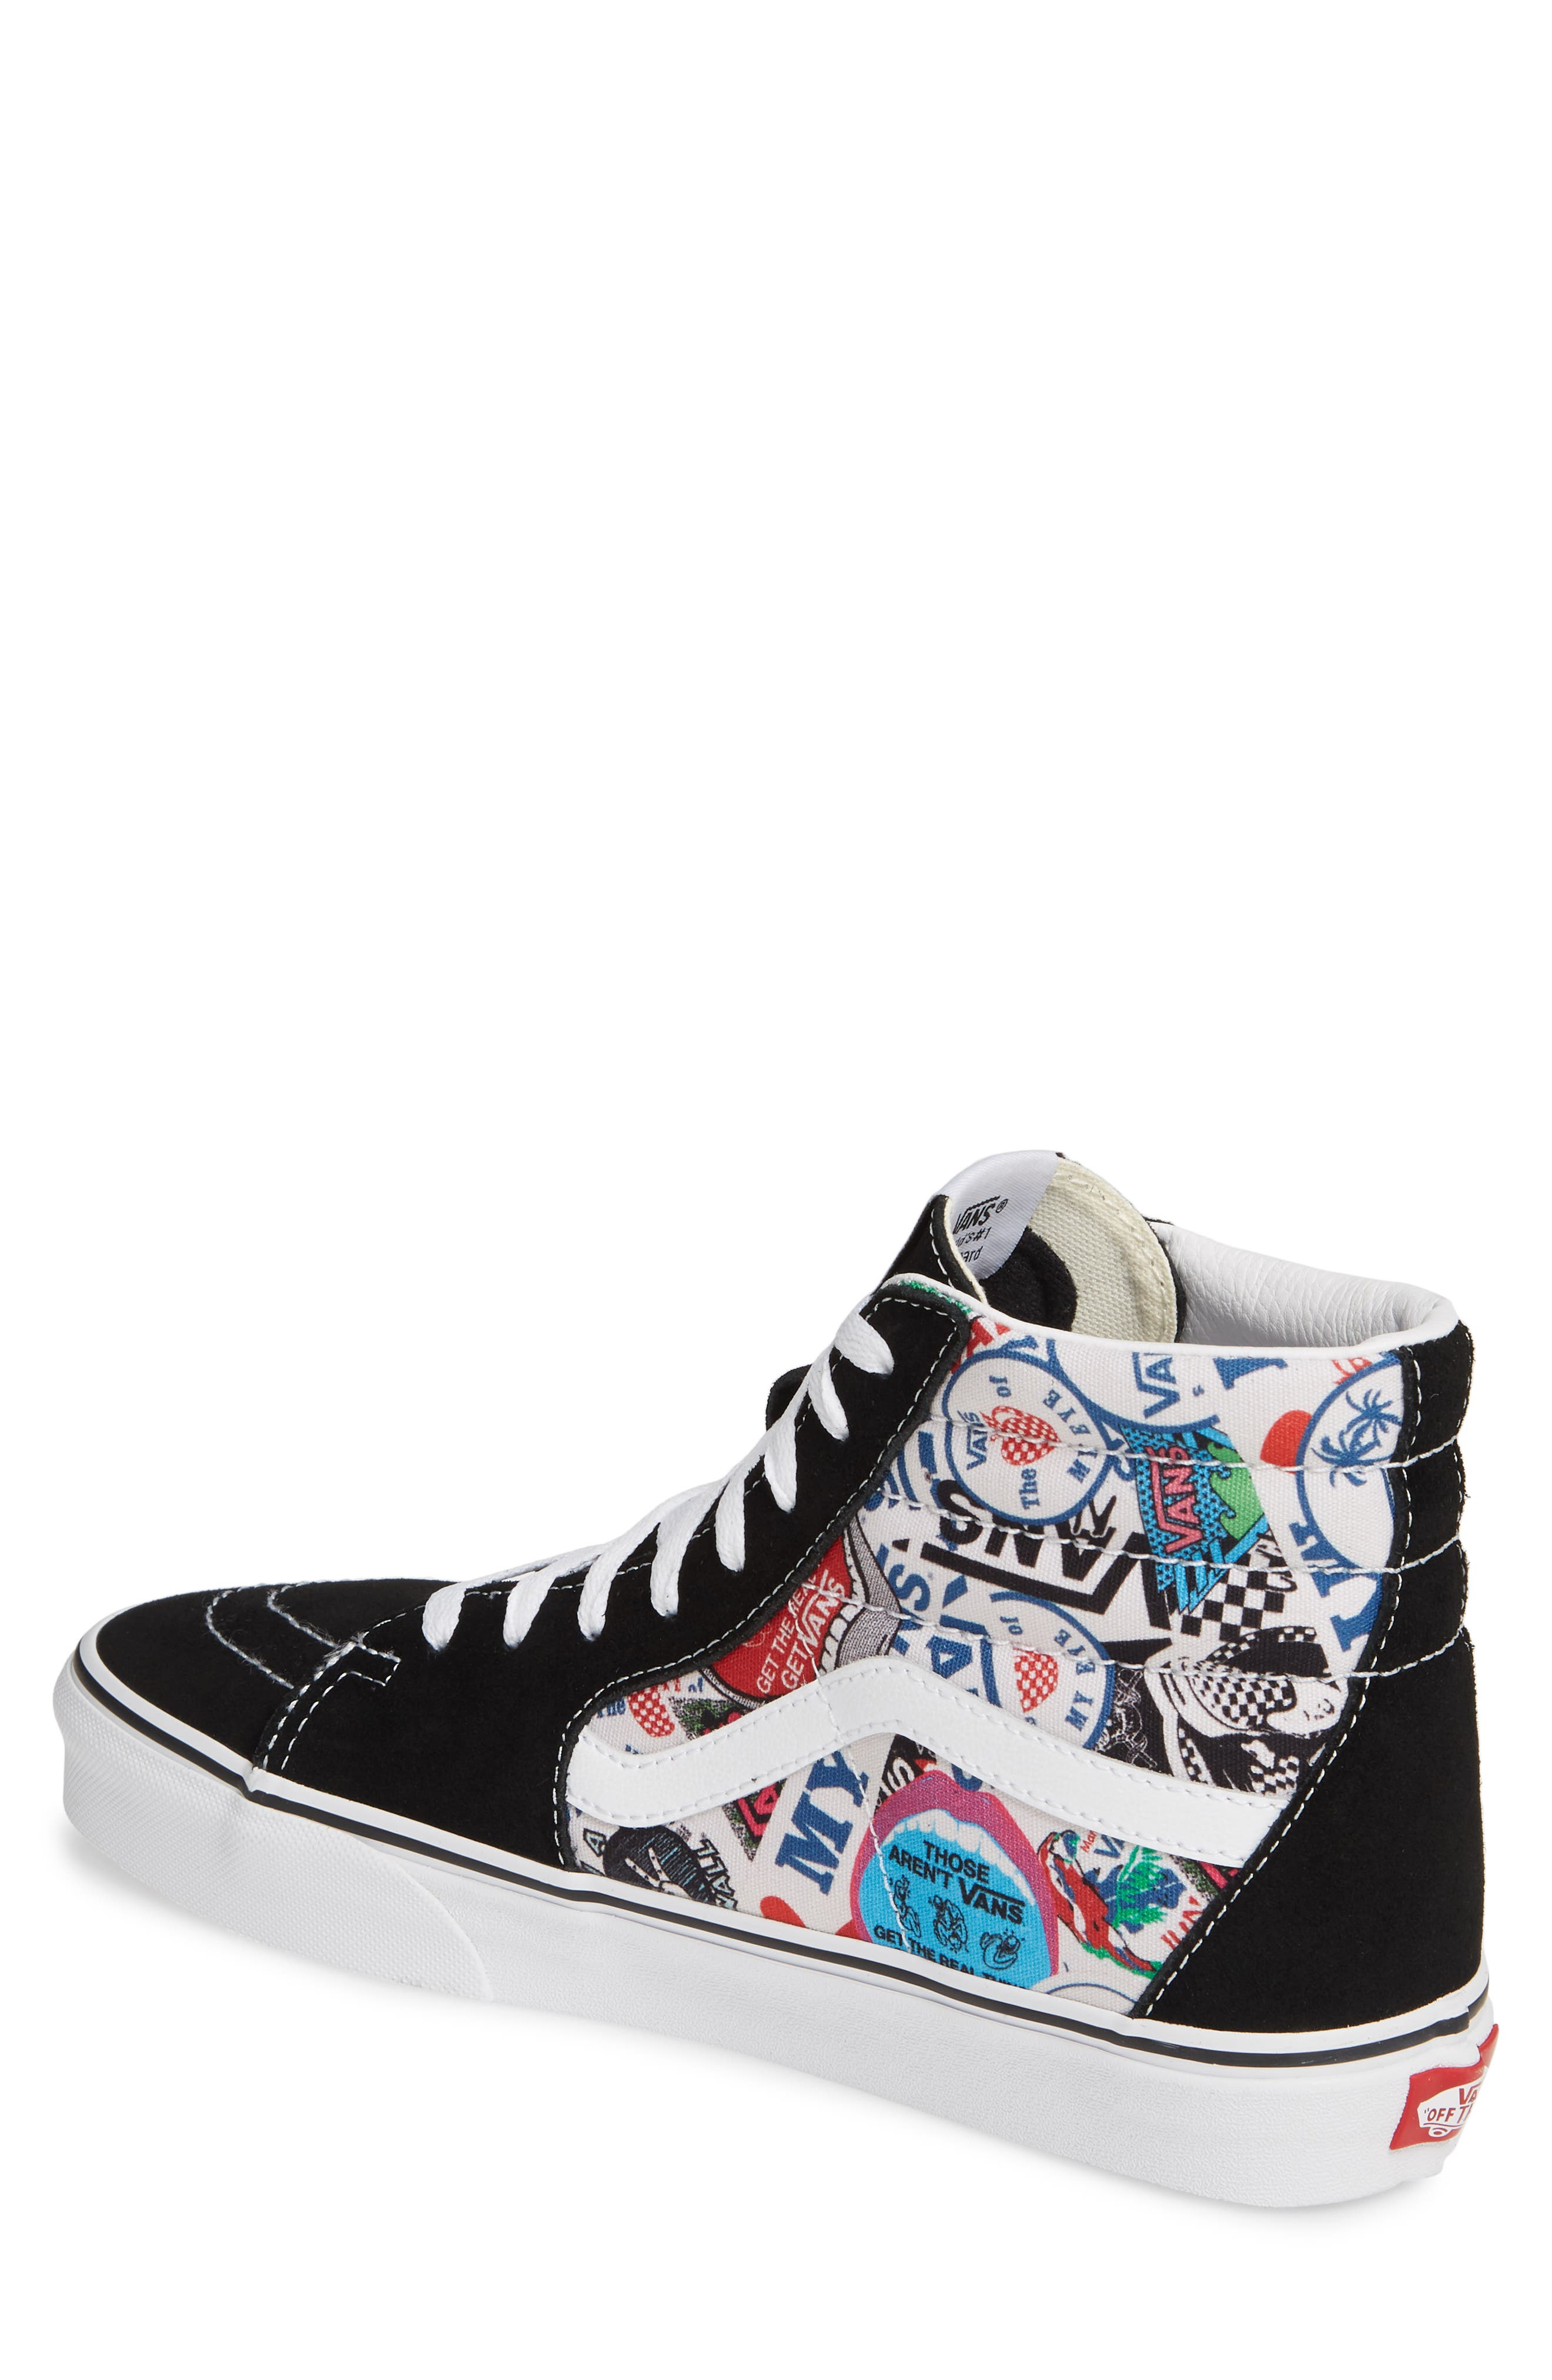 abdc1a29d128b Men s Vans View All  Clothing